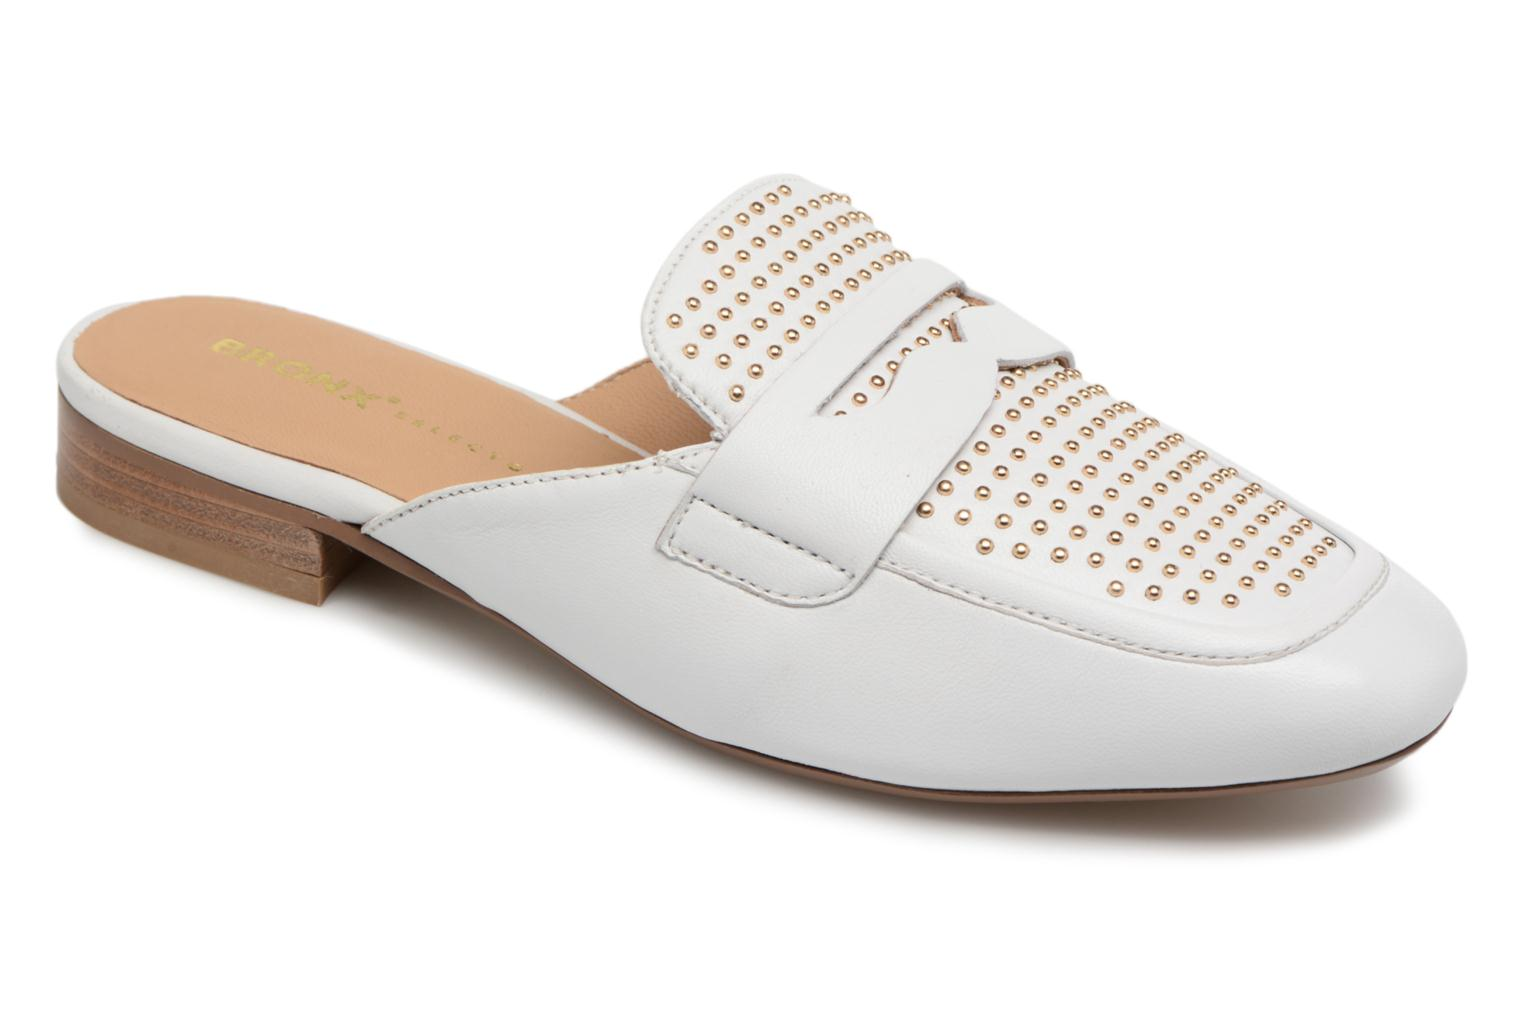 Marques Chaussure femme Bronx femme BCERYLX 01 White